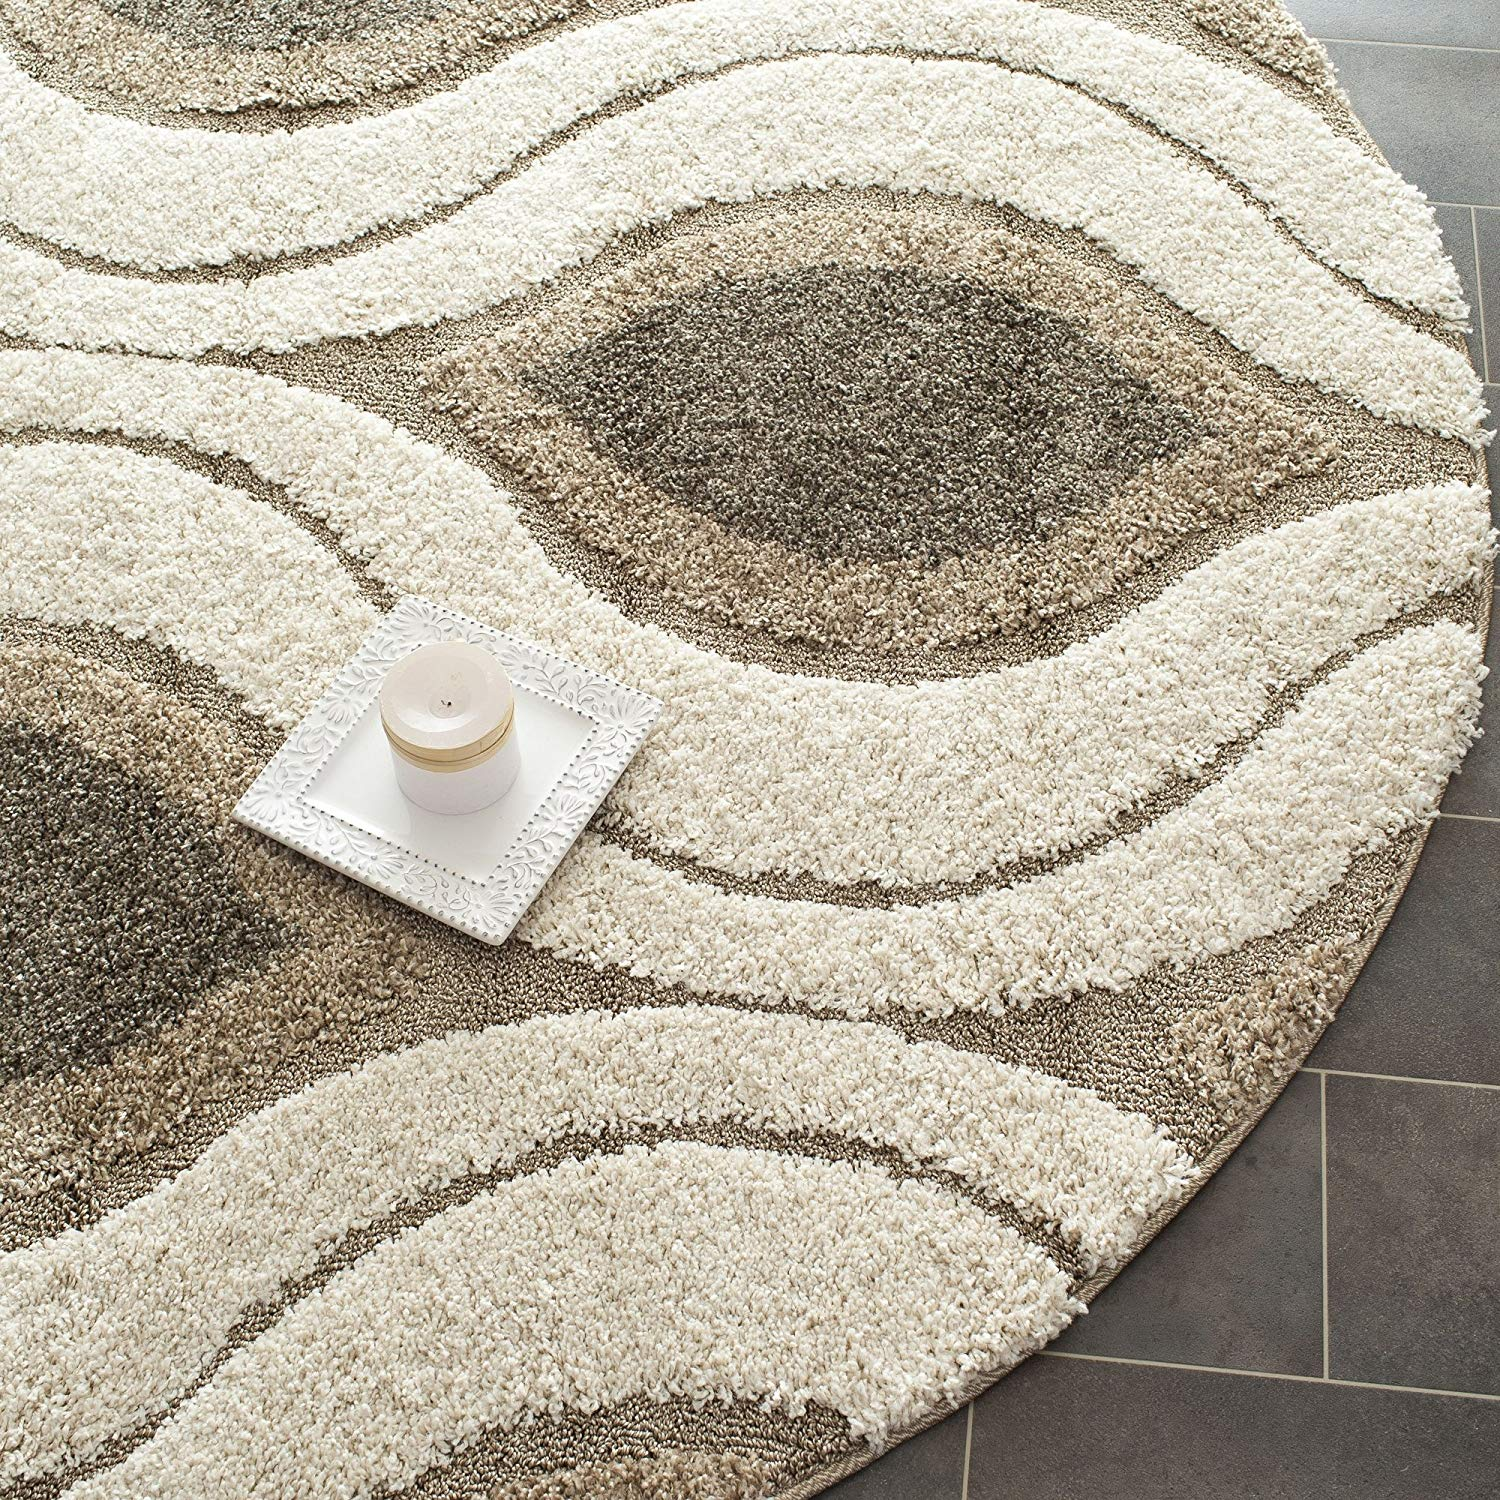 round area rug amazon.com: safavieh florida shag collection sg461-1179 cream and smoke round  area rug QYLWUXO